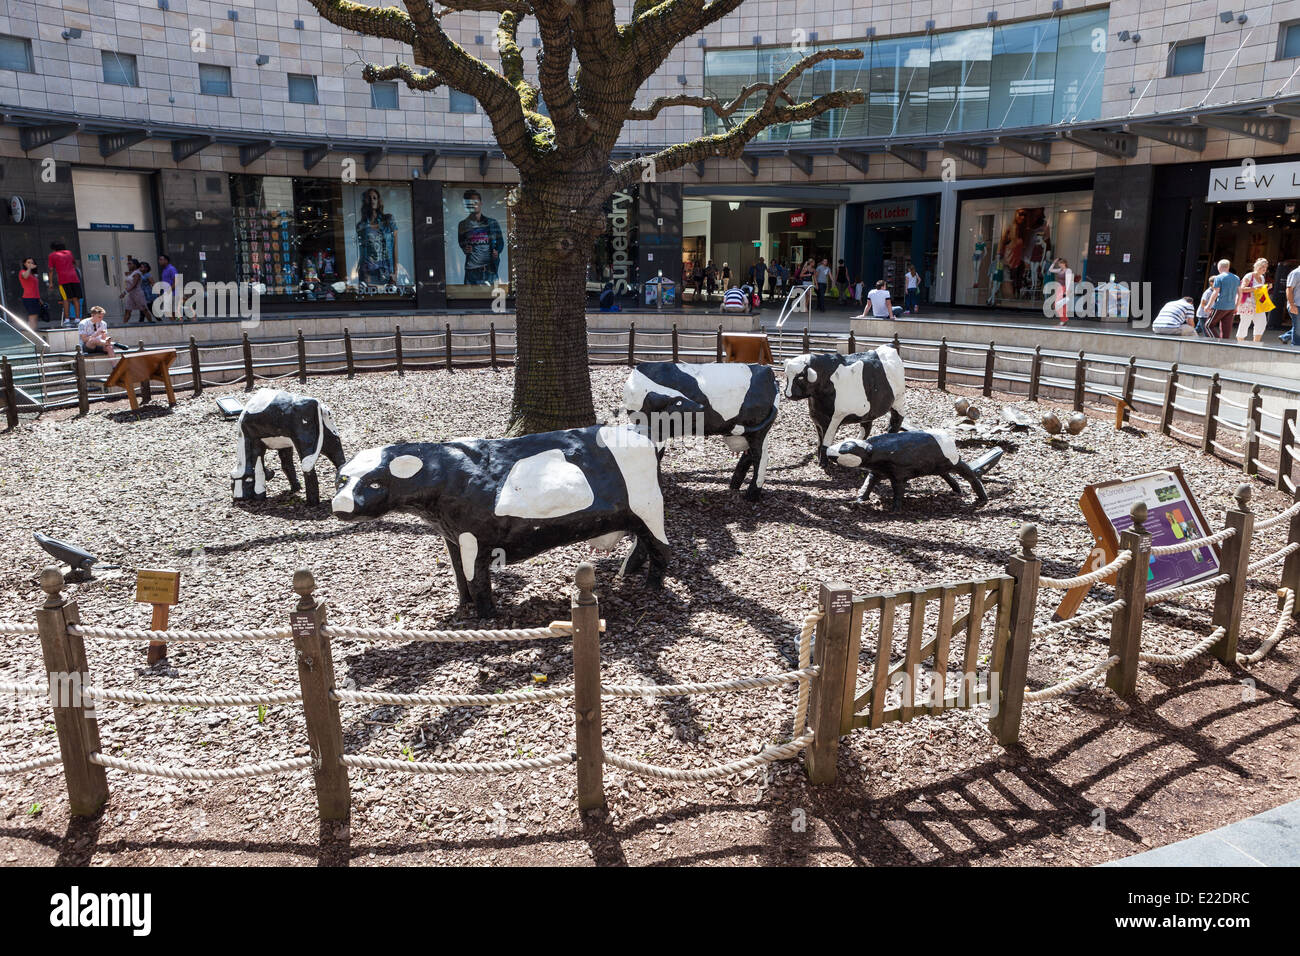 Milton Keynes' Concrete Cows have become infamous since being sculpted by Canadian-born artist Liz Leyh in 1978. - Stock Image